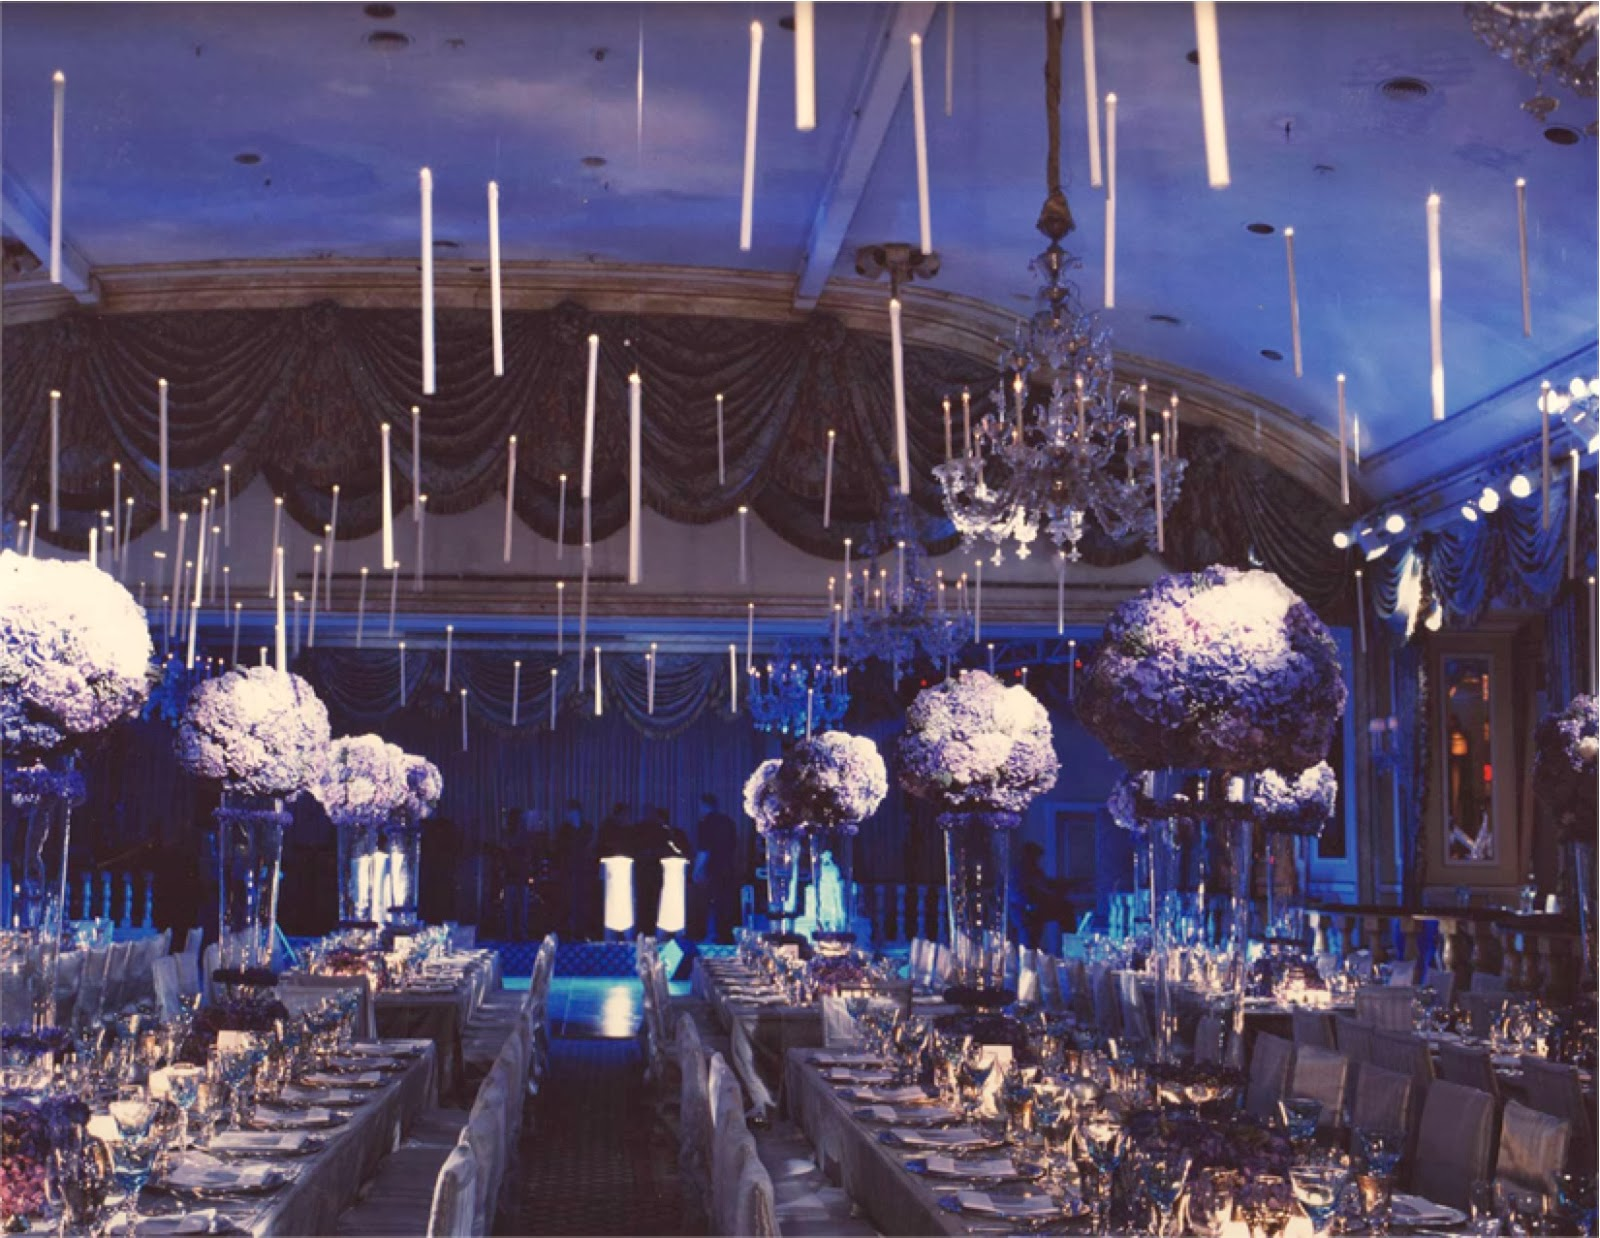 Twc una boda inspirada en harry potter for Comedor harry potter